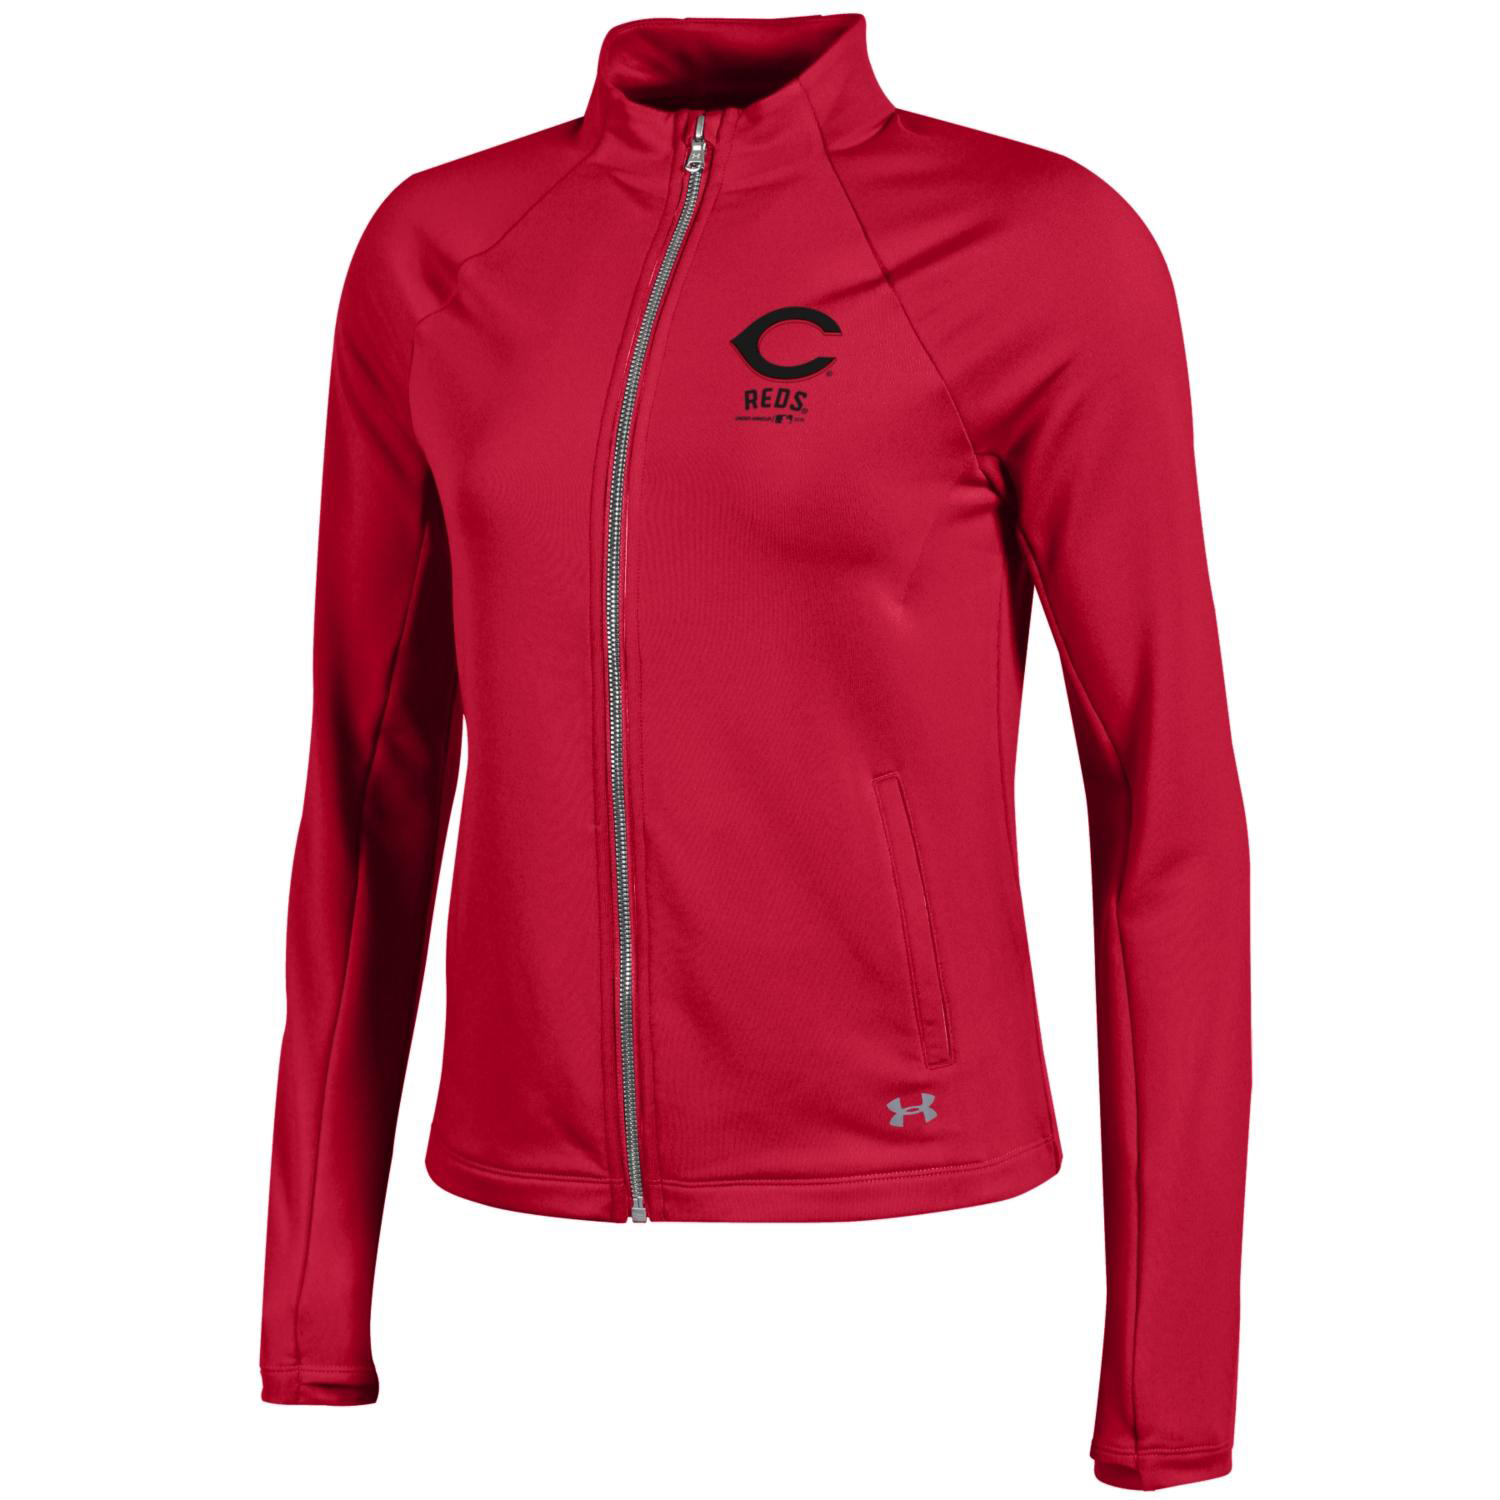 Cincinnati Reds Under Armour Women's Fleece Full-Zip Jacket Red by Gear For Sports/Under Armour